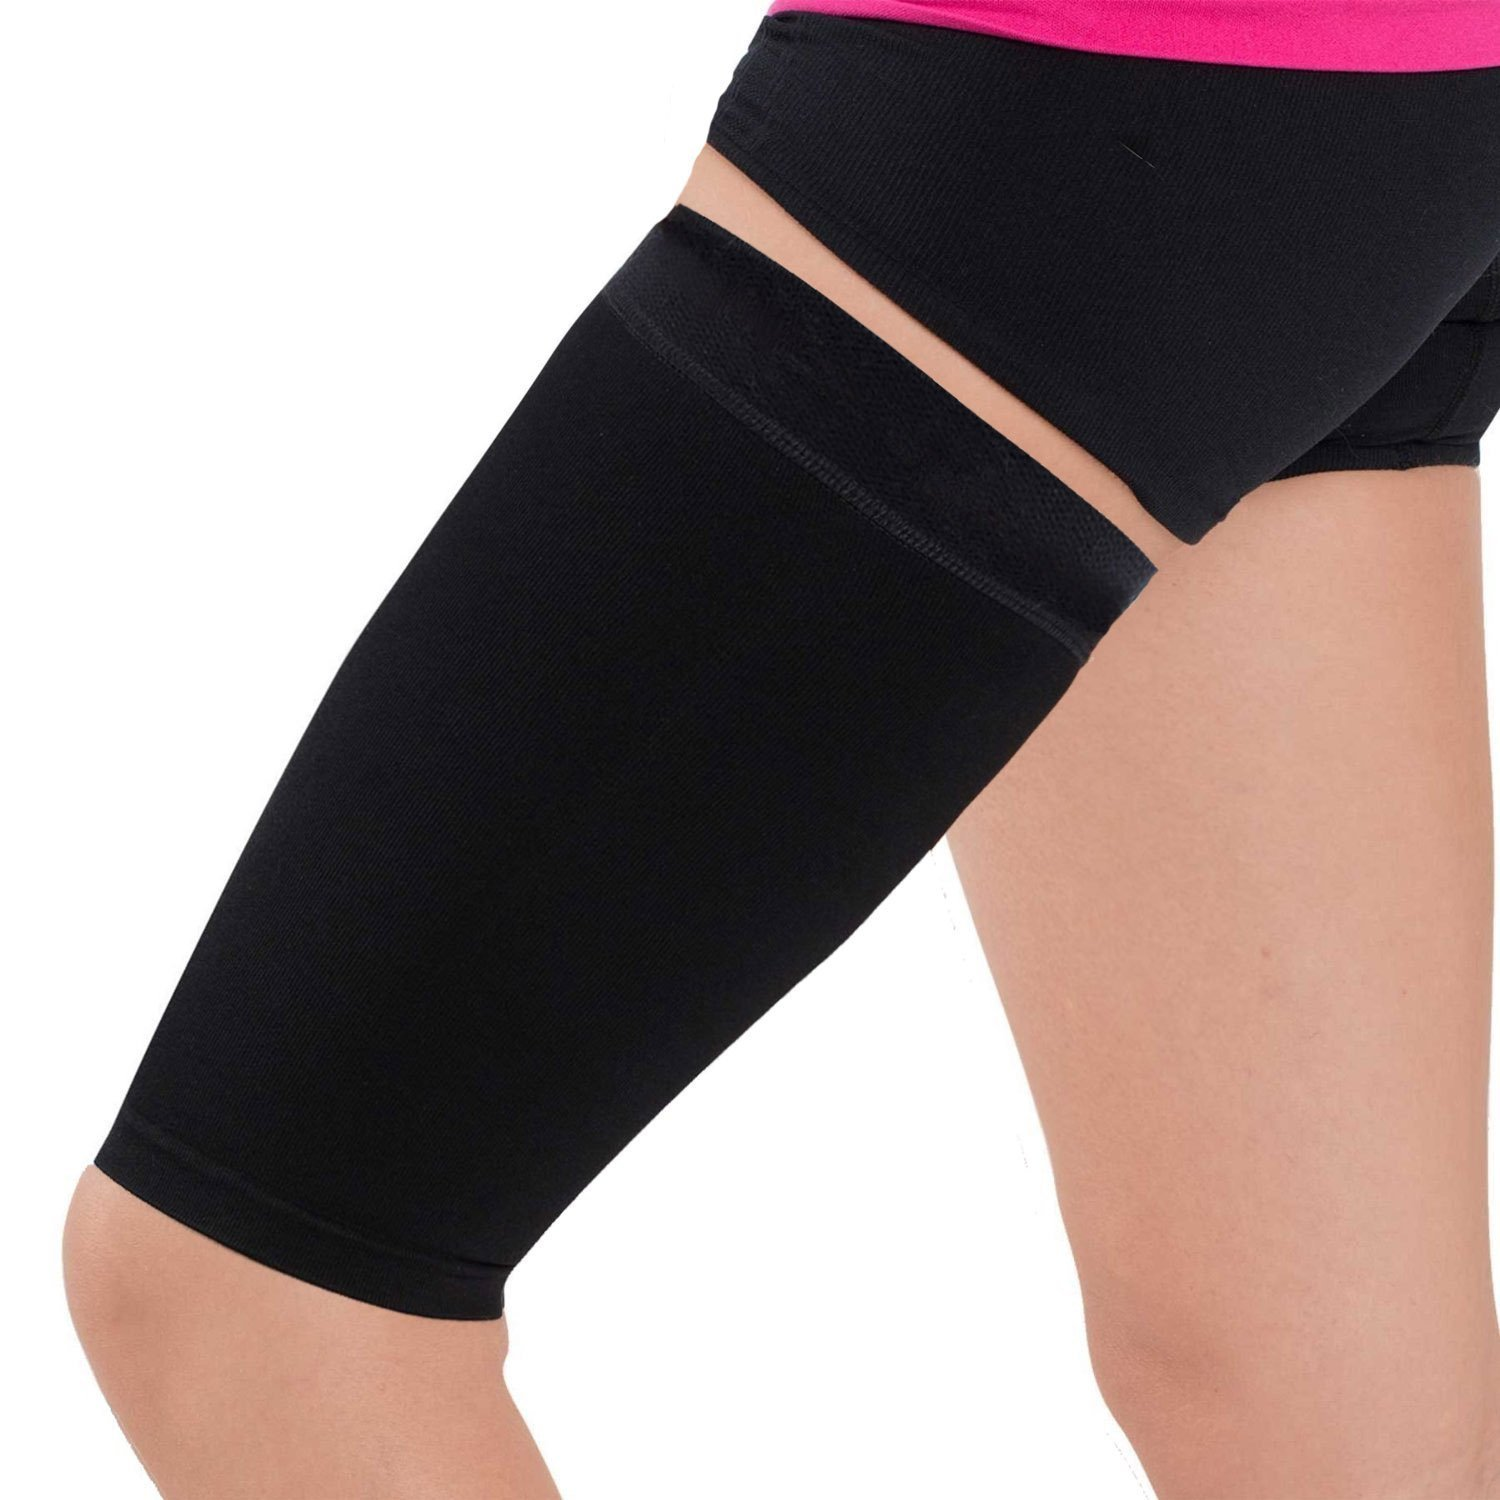 Thigh Compression Sleeve - Hamstring, Quadriceps, Groin Pull and Strains - Running, Basketball, Tennis, Soccer, Sports - Athletic Thigh Support (Single) (Black, L) by Pure Compression